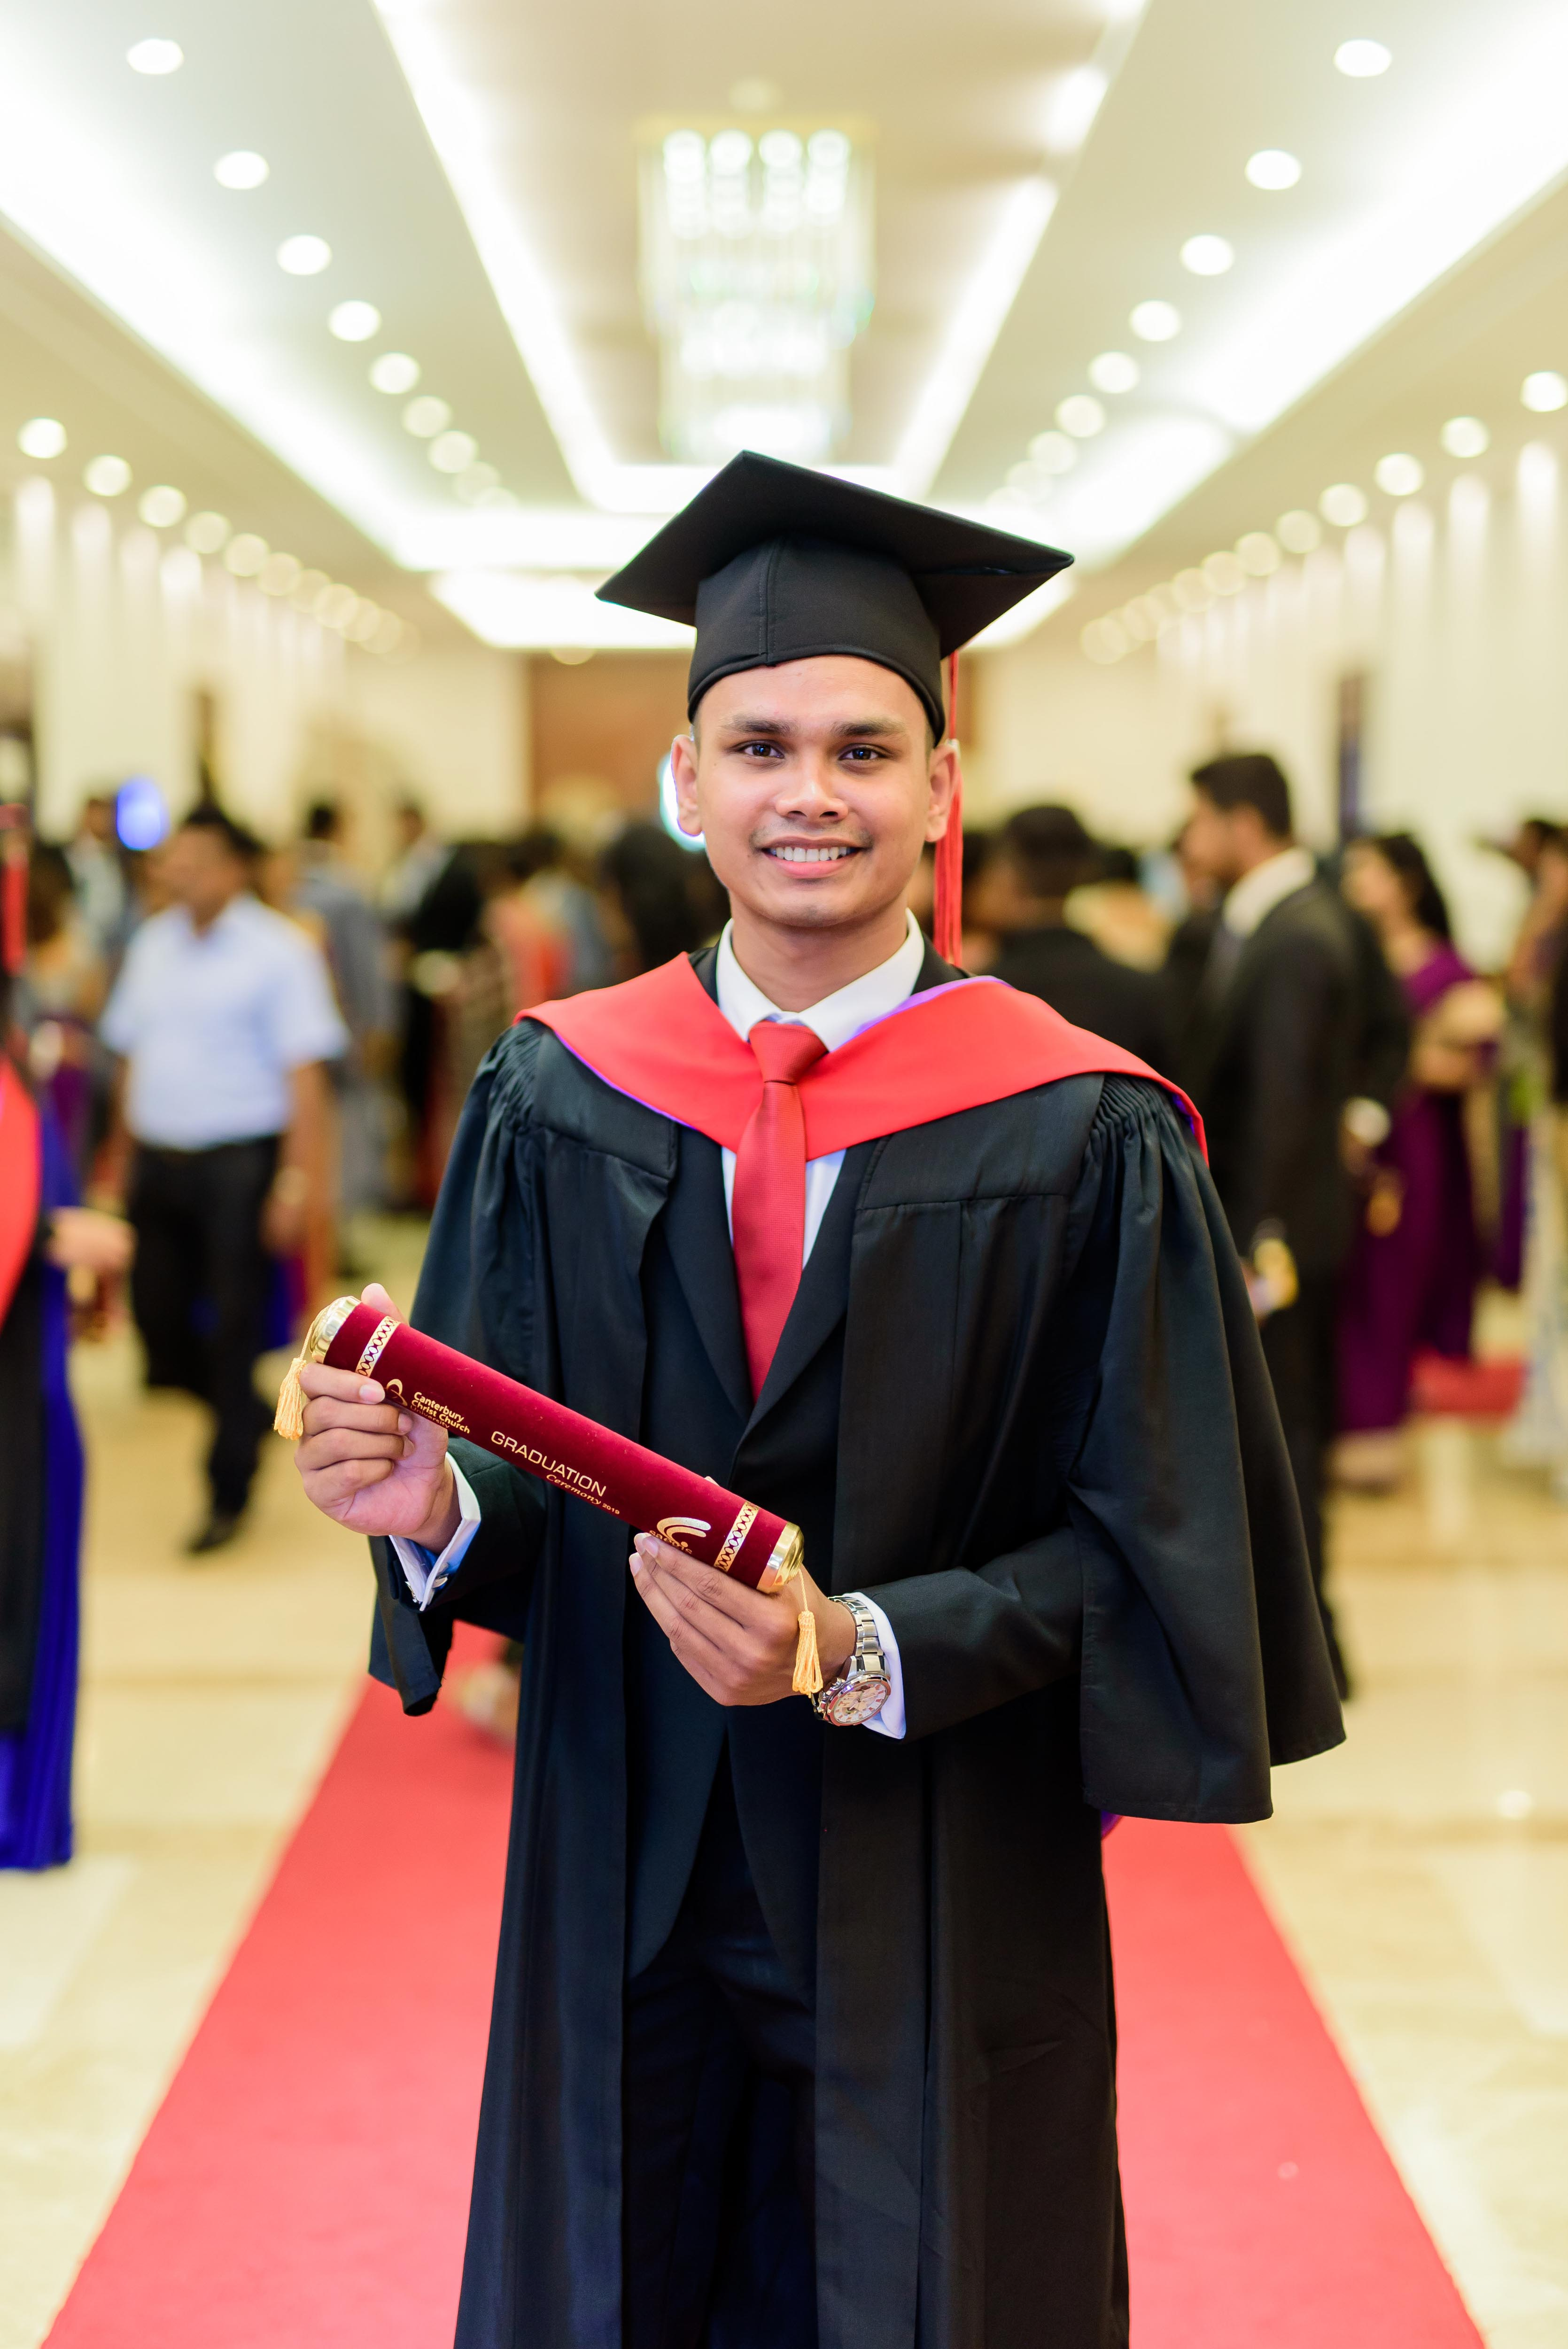 Mohamed Rizni Fairose Bachelor of Science (Hons) Business Management - First Class Awarded by Canterbury Christ Church University